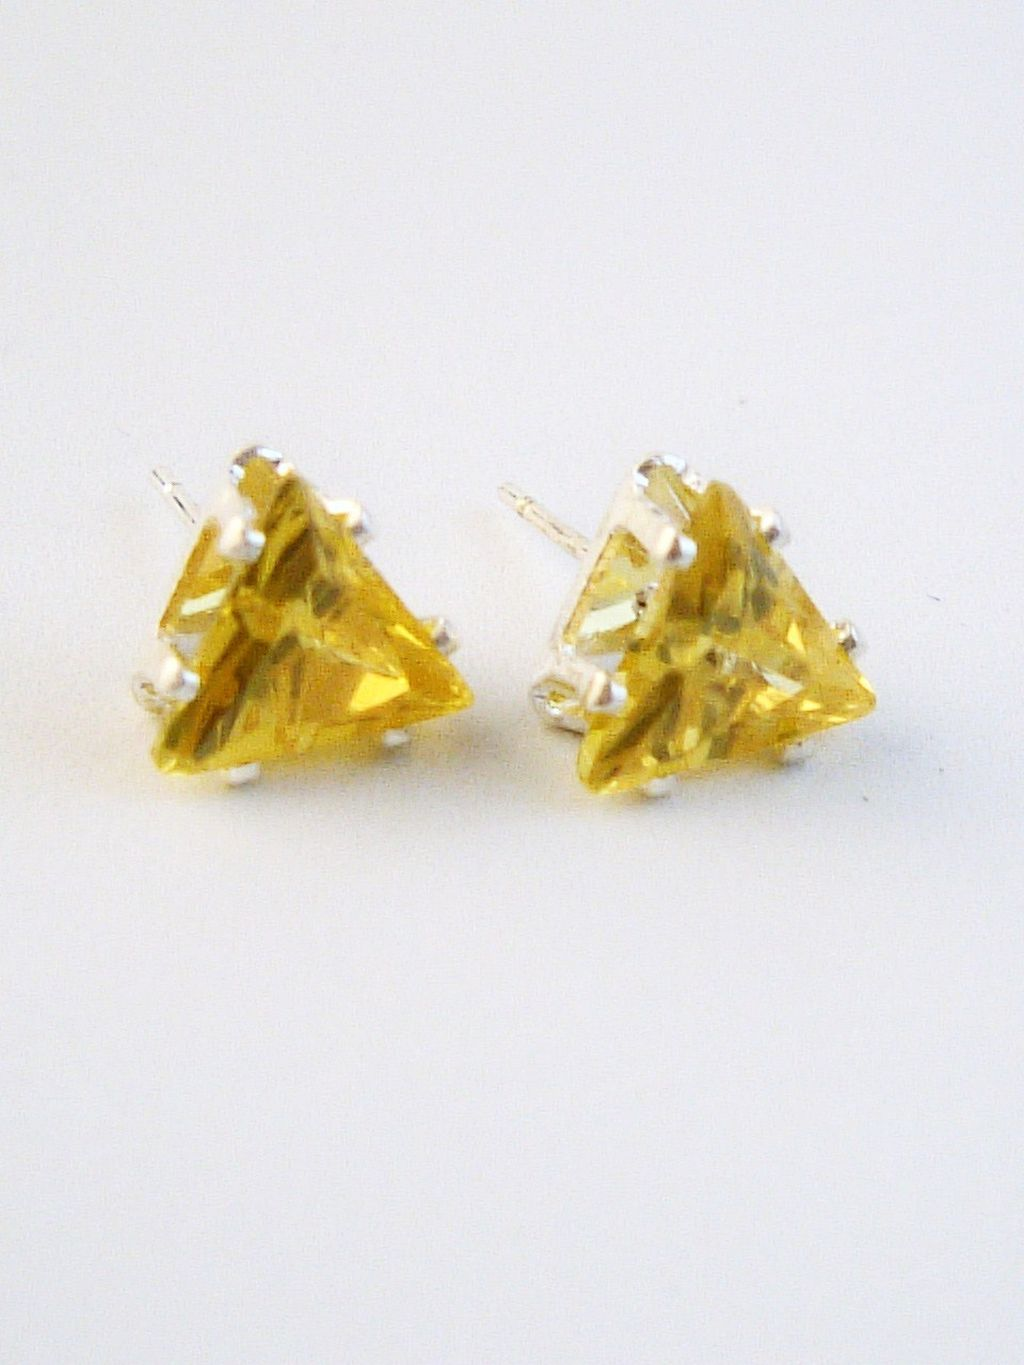 Yellow Sapphire Triangle Cut Silver Stud Earrings Genuine CZ Cubic Zirconia